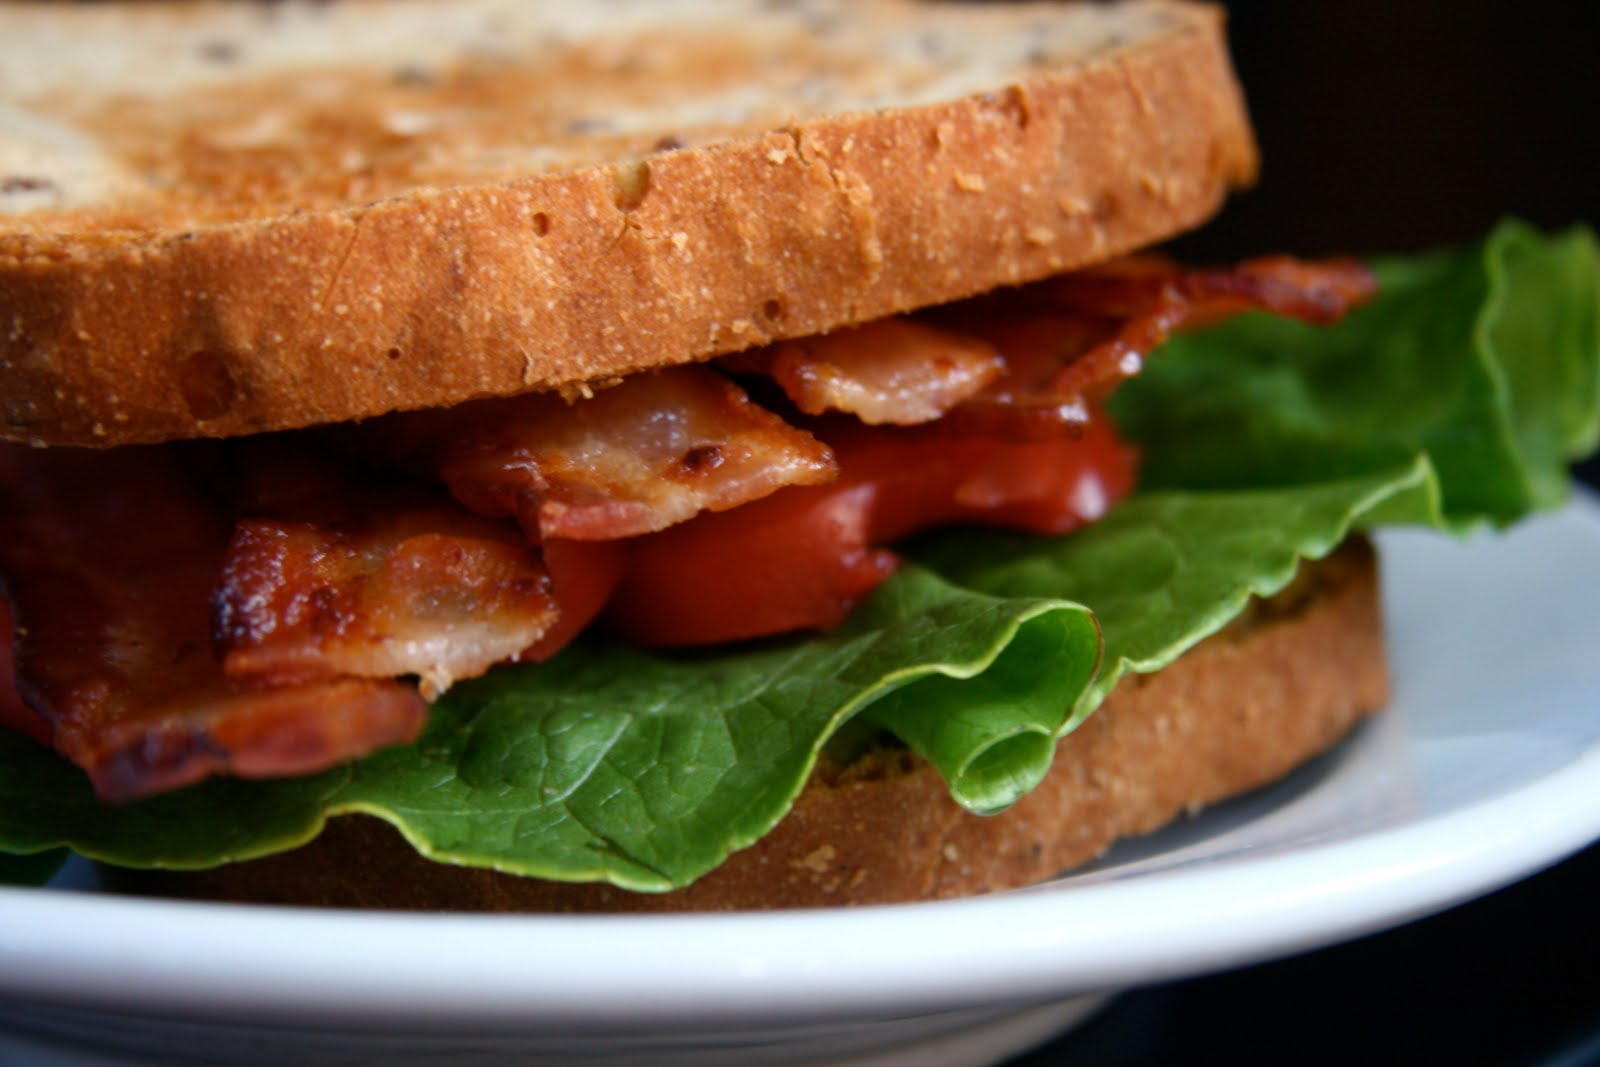 so last night was bacon lettuce and tomato sandwich night